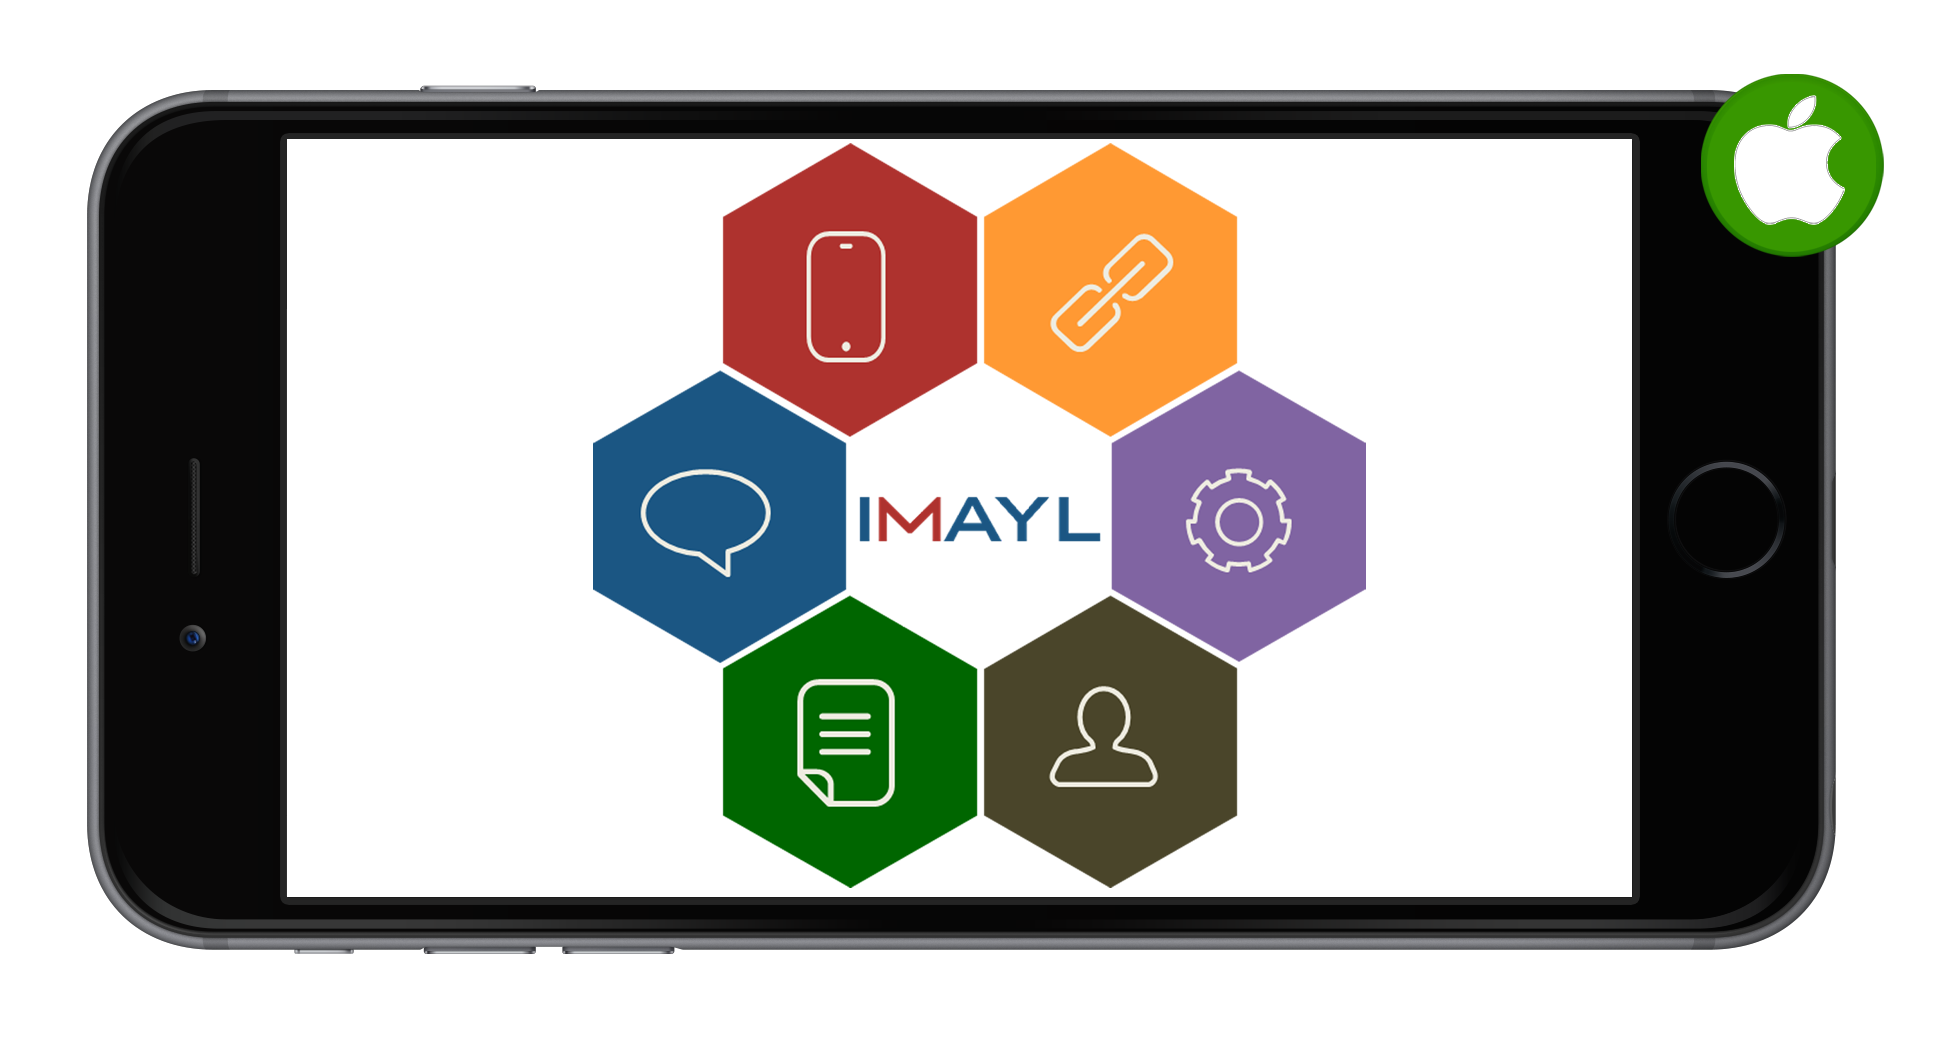 iMAYL For iPhone